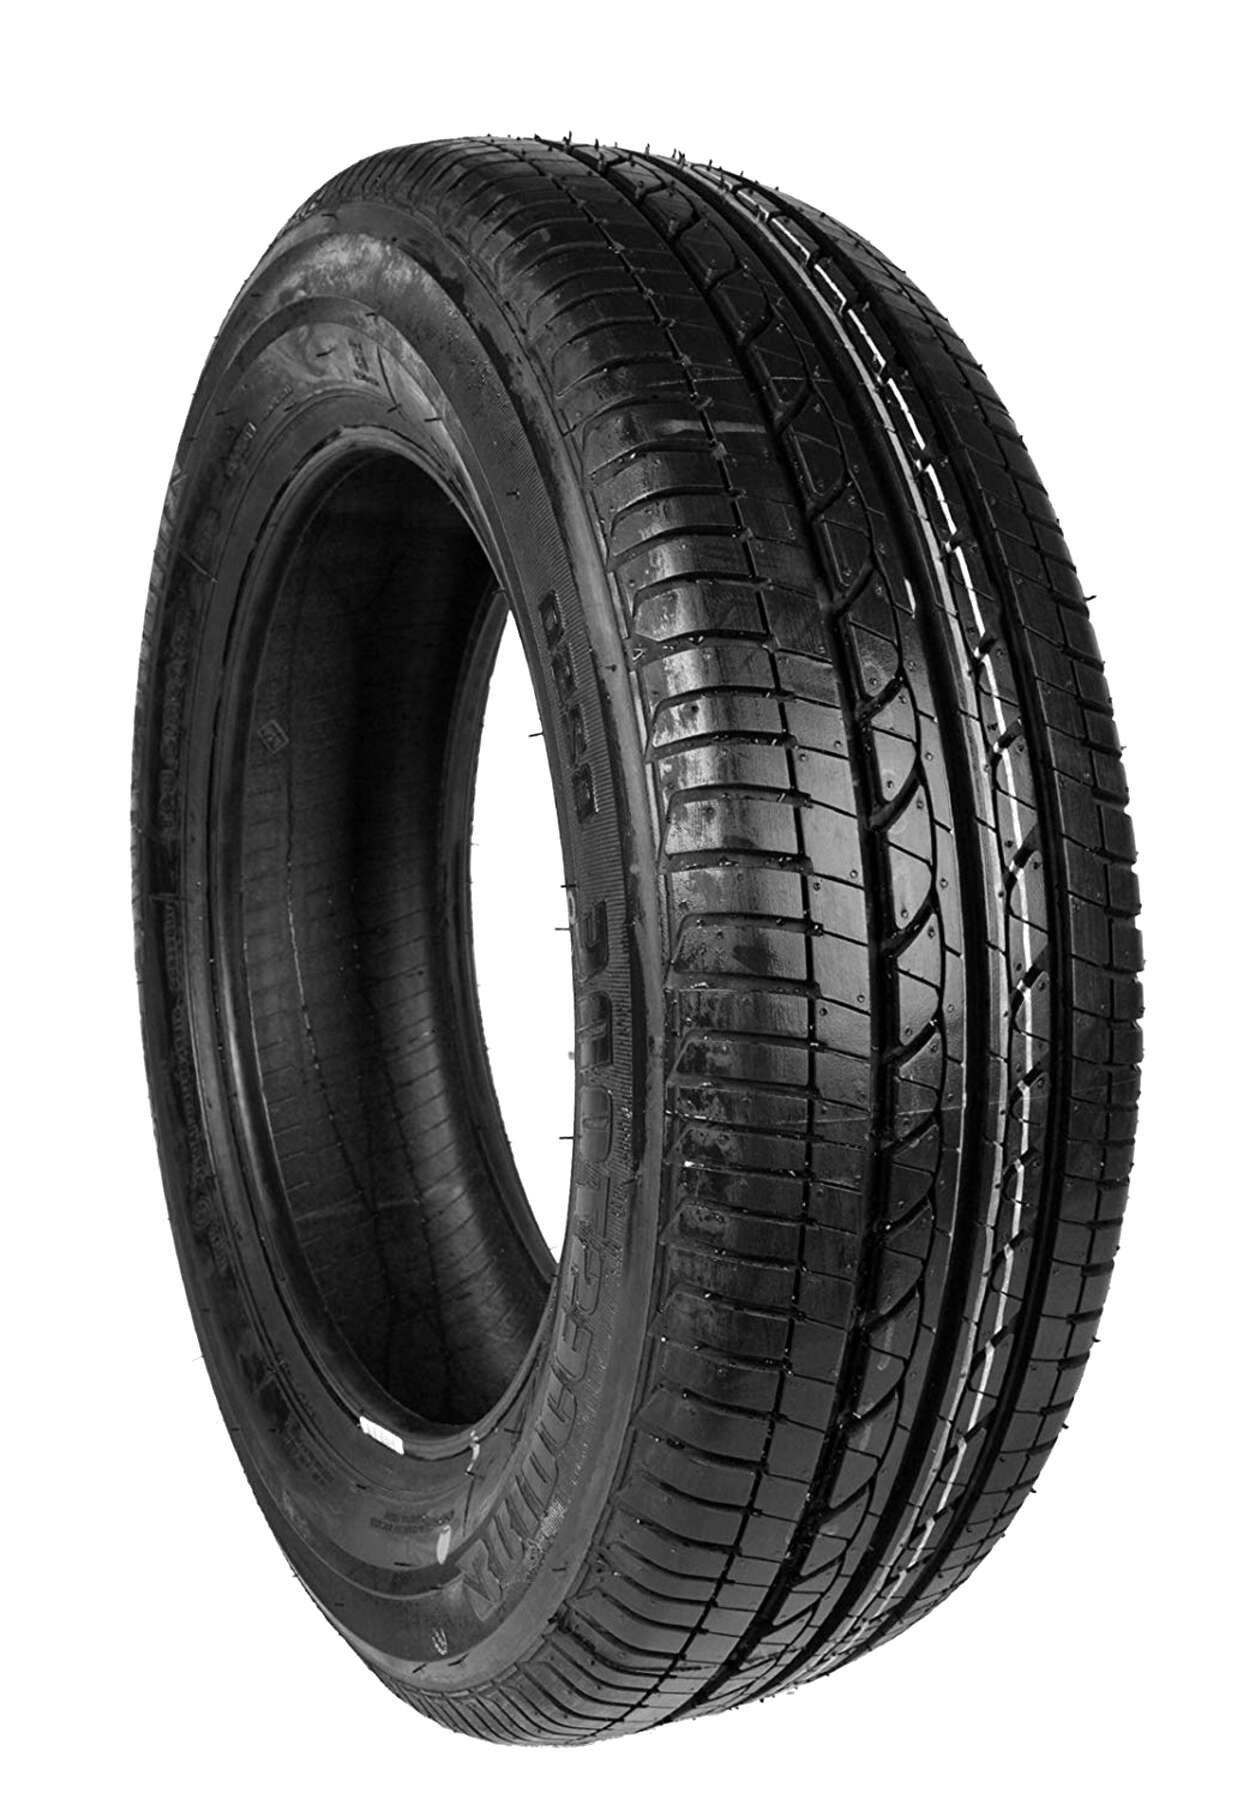 r15 tyres for sale